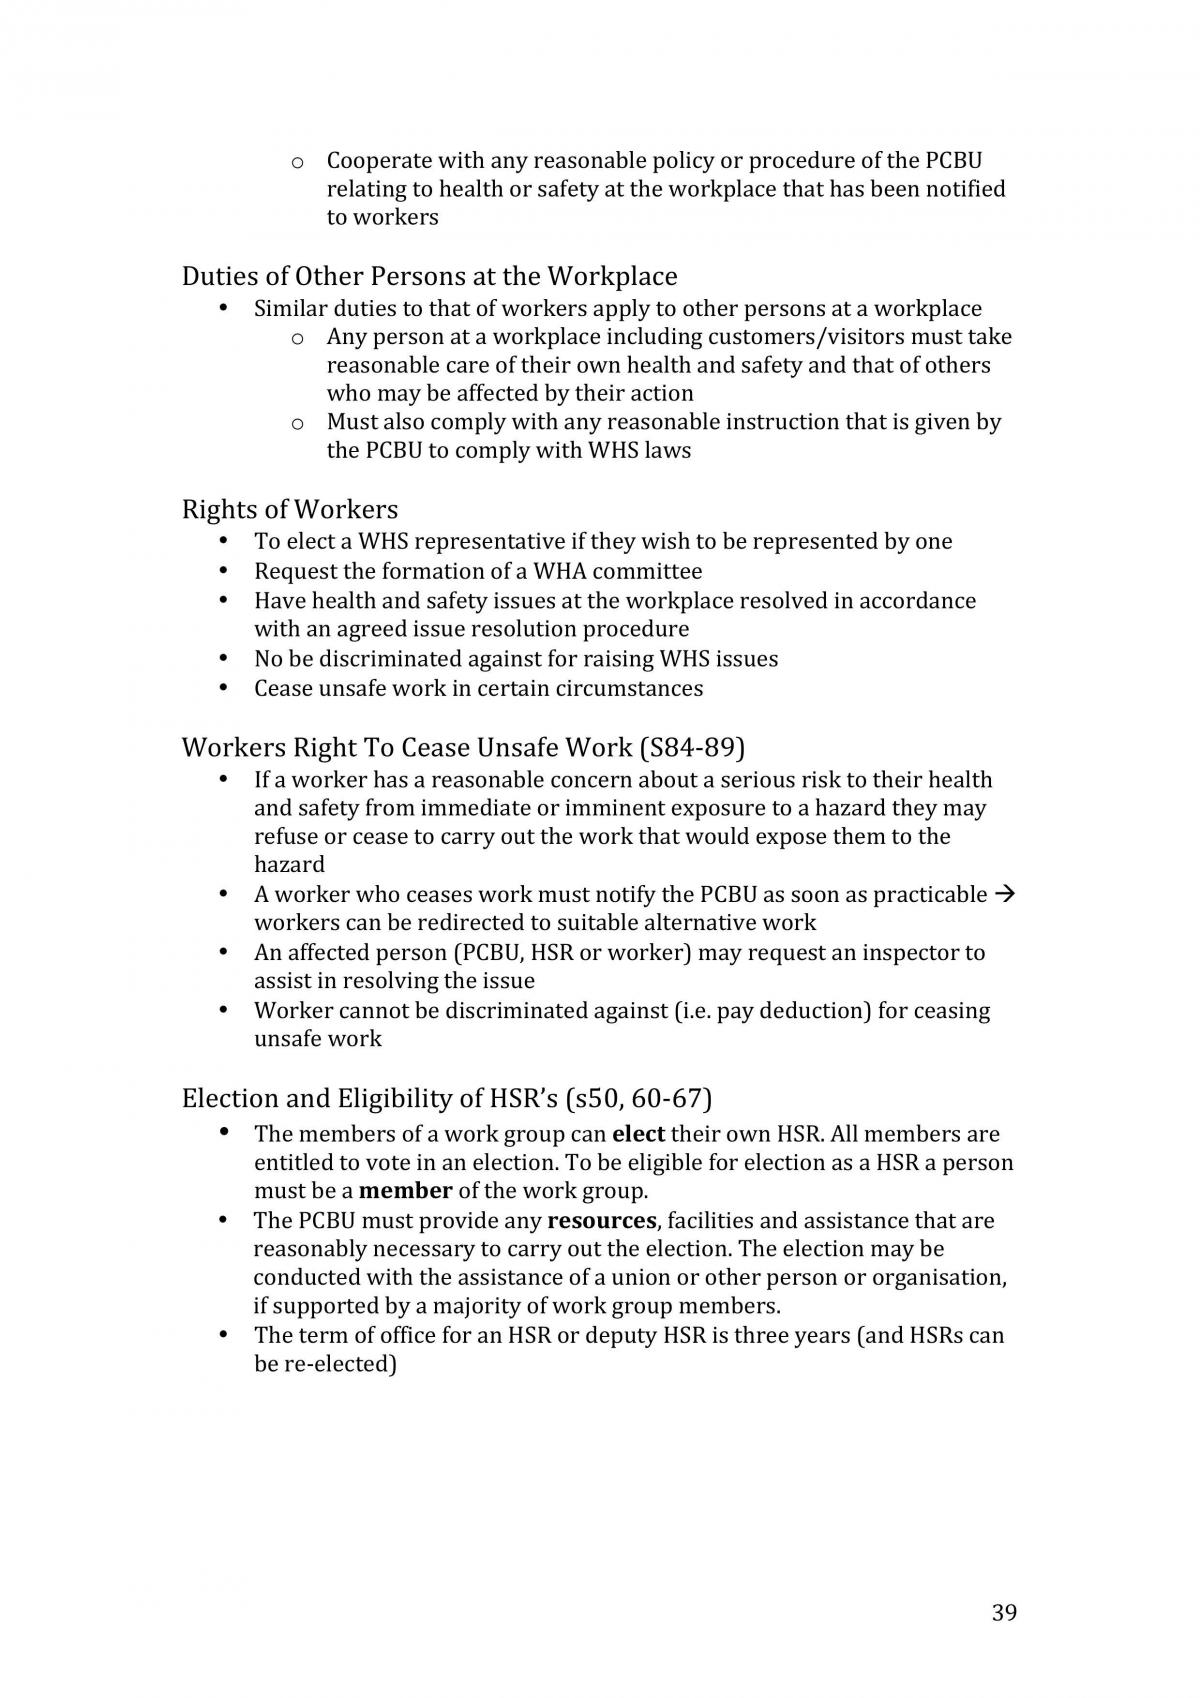 Business Ethics and Risk Management Full Course Notes - Page 39